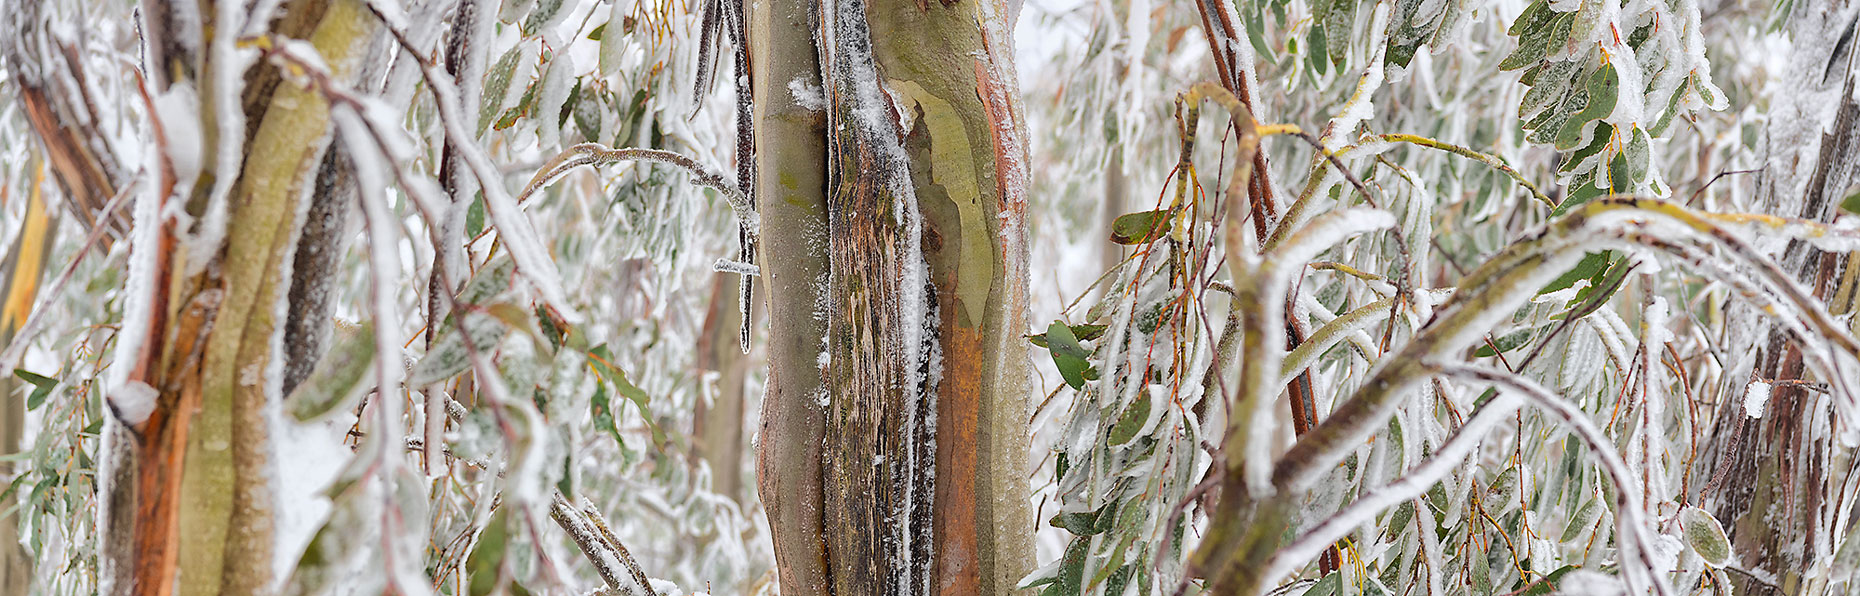 Snow Gum Study 3 - Open Edition